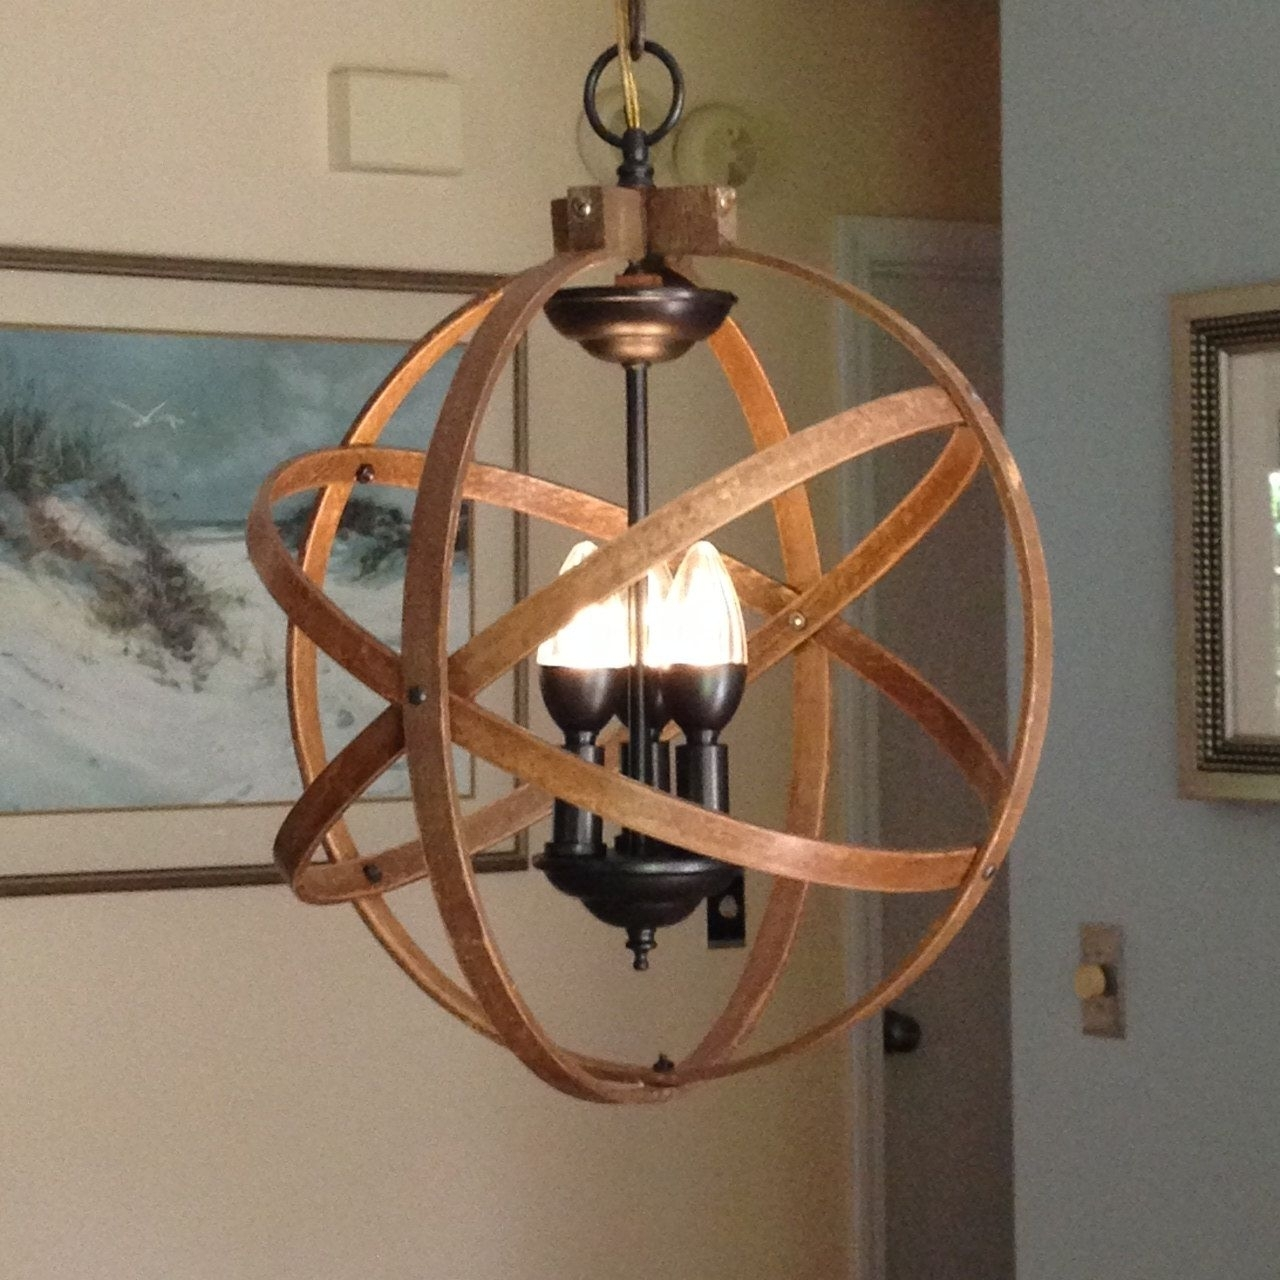 "Most Popular Orb Chandelier Light 14"" Atomic Light Fixture Industrial Lighting Pertaining To Atom Chandeliers (View 12 of 15)"